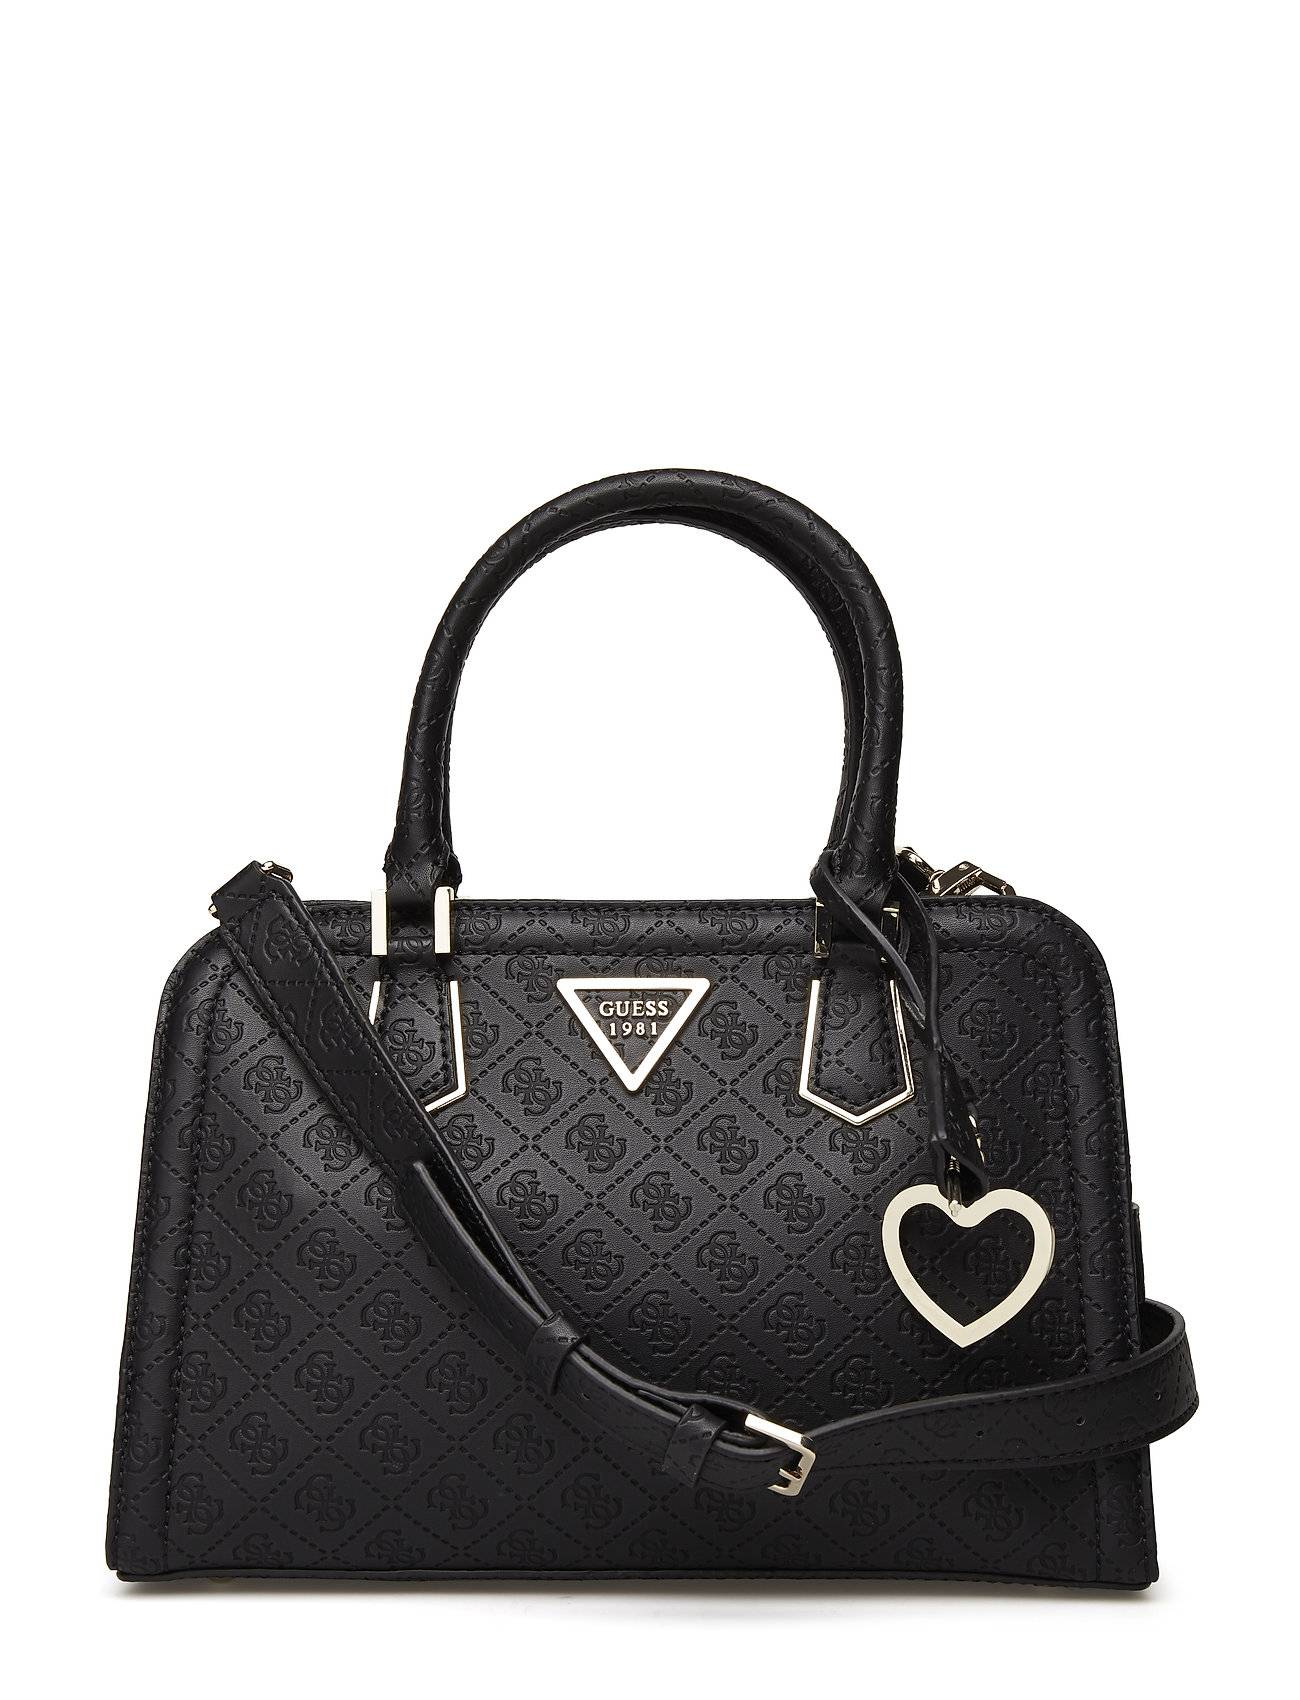 GUESS Lyra Small Girlfriend Satchel